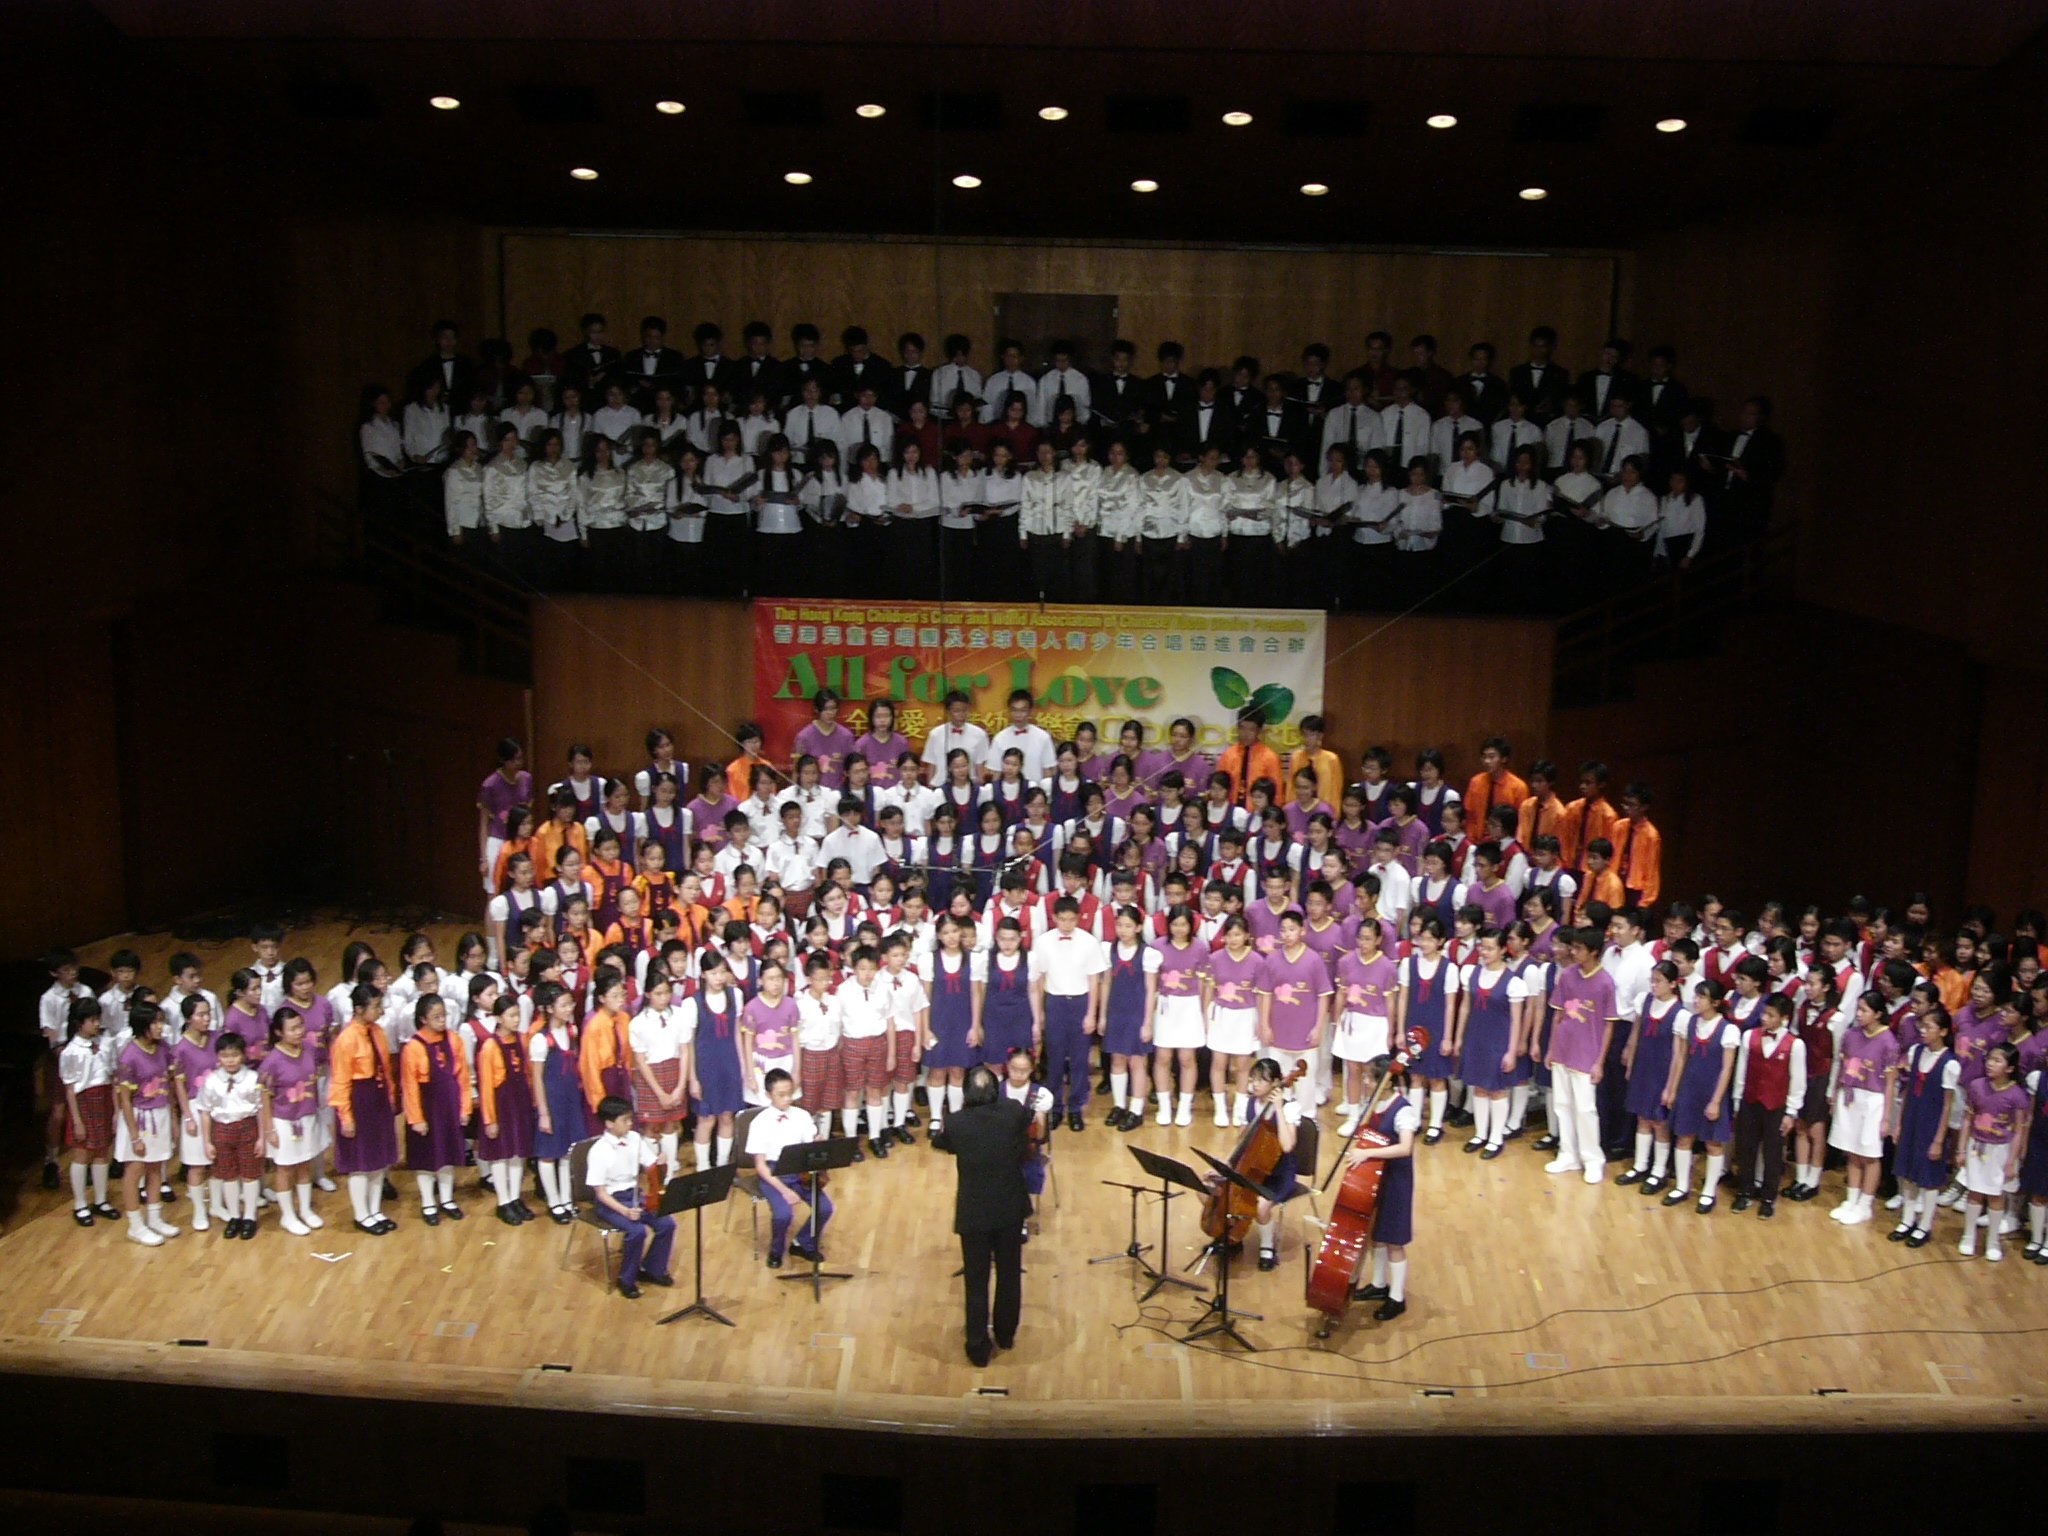 https://hkcchoir.org.hk/sites/default/files/charity_2003_all_for_love1.jpg